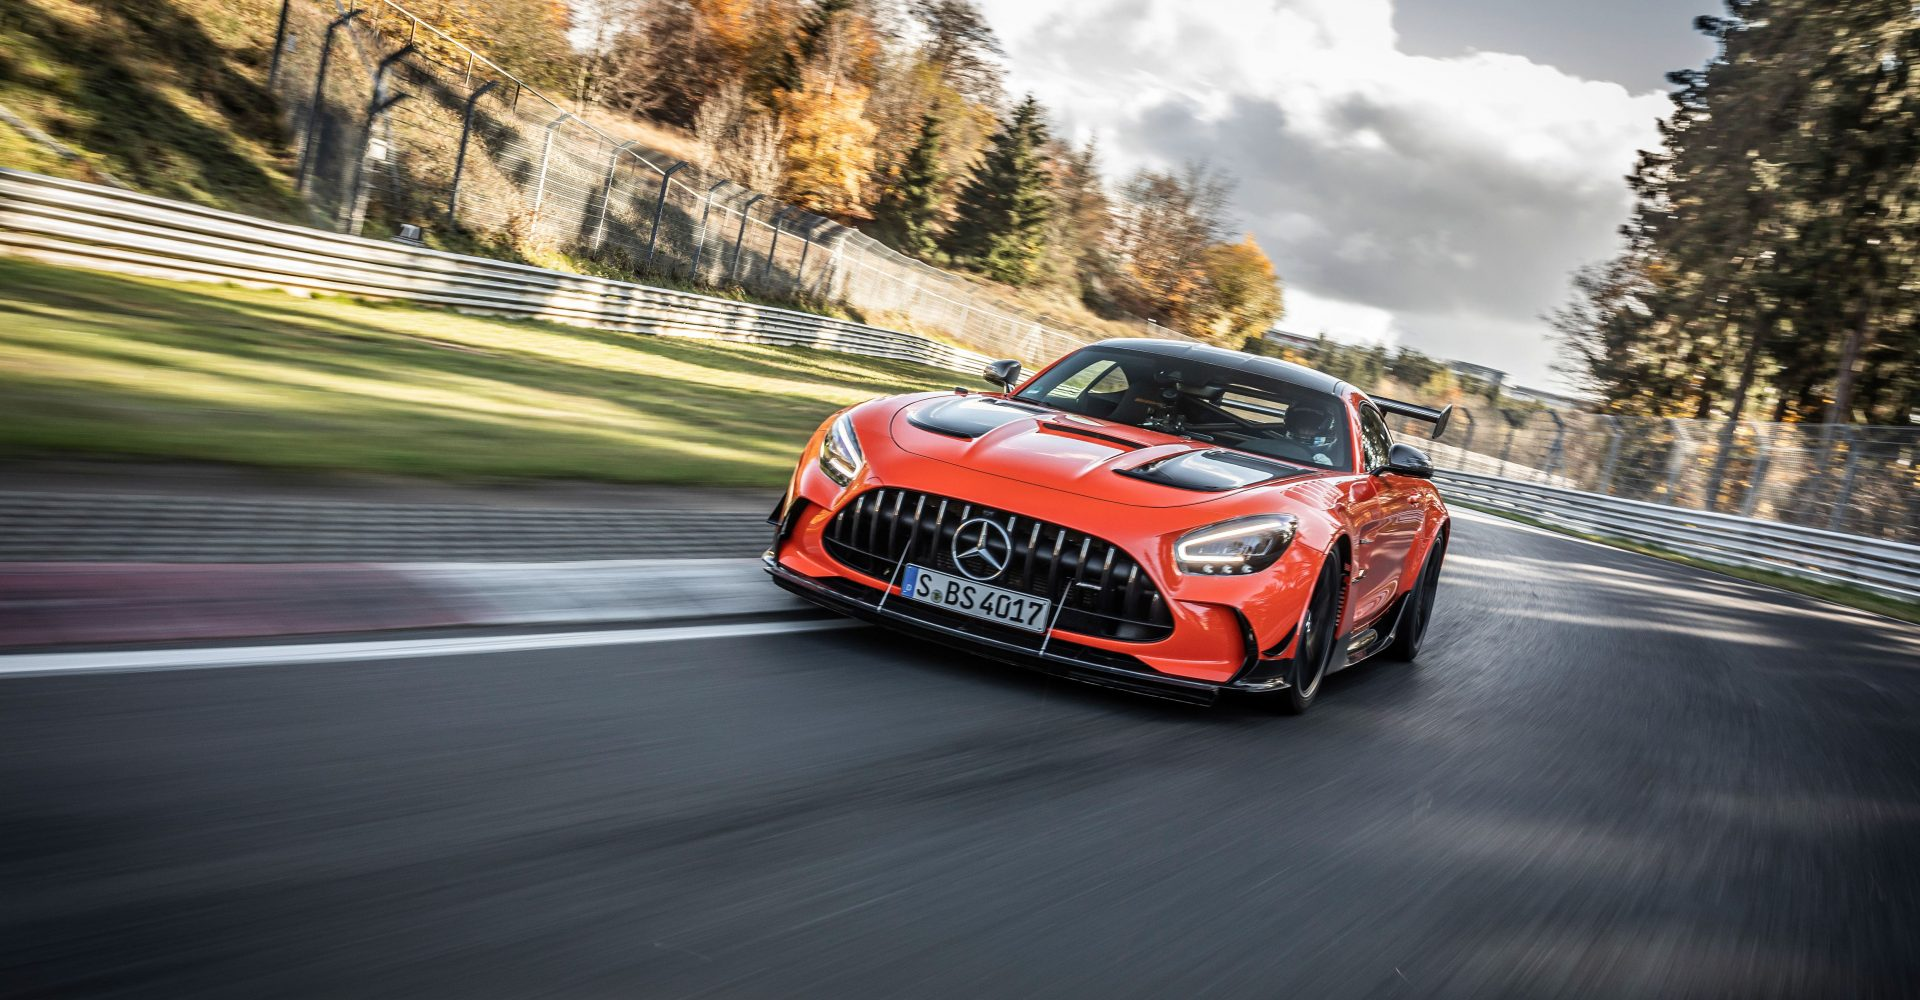 Mercedes-AMG GT Black Series smashes Nurburgring lap record